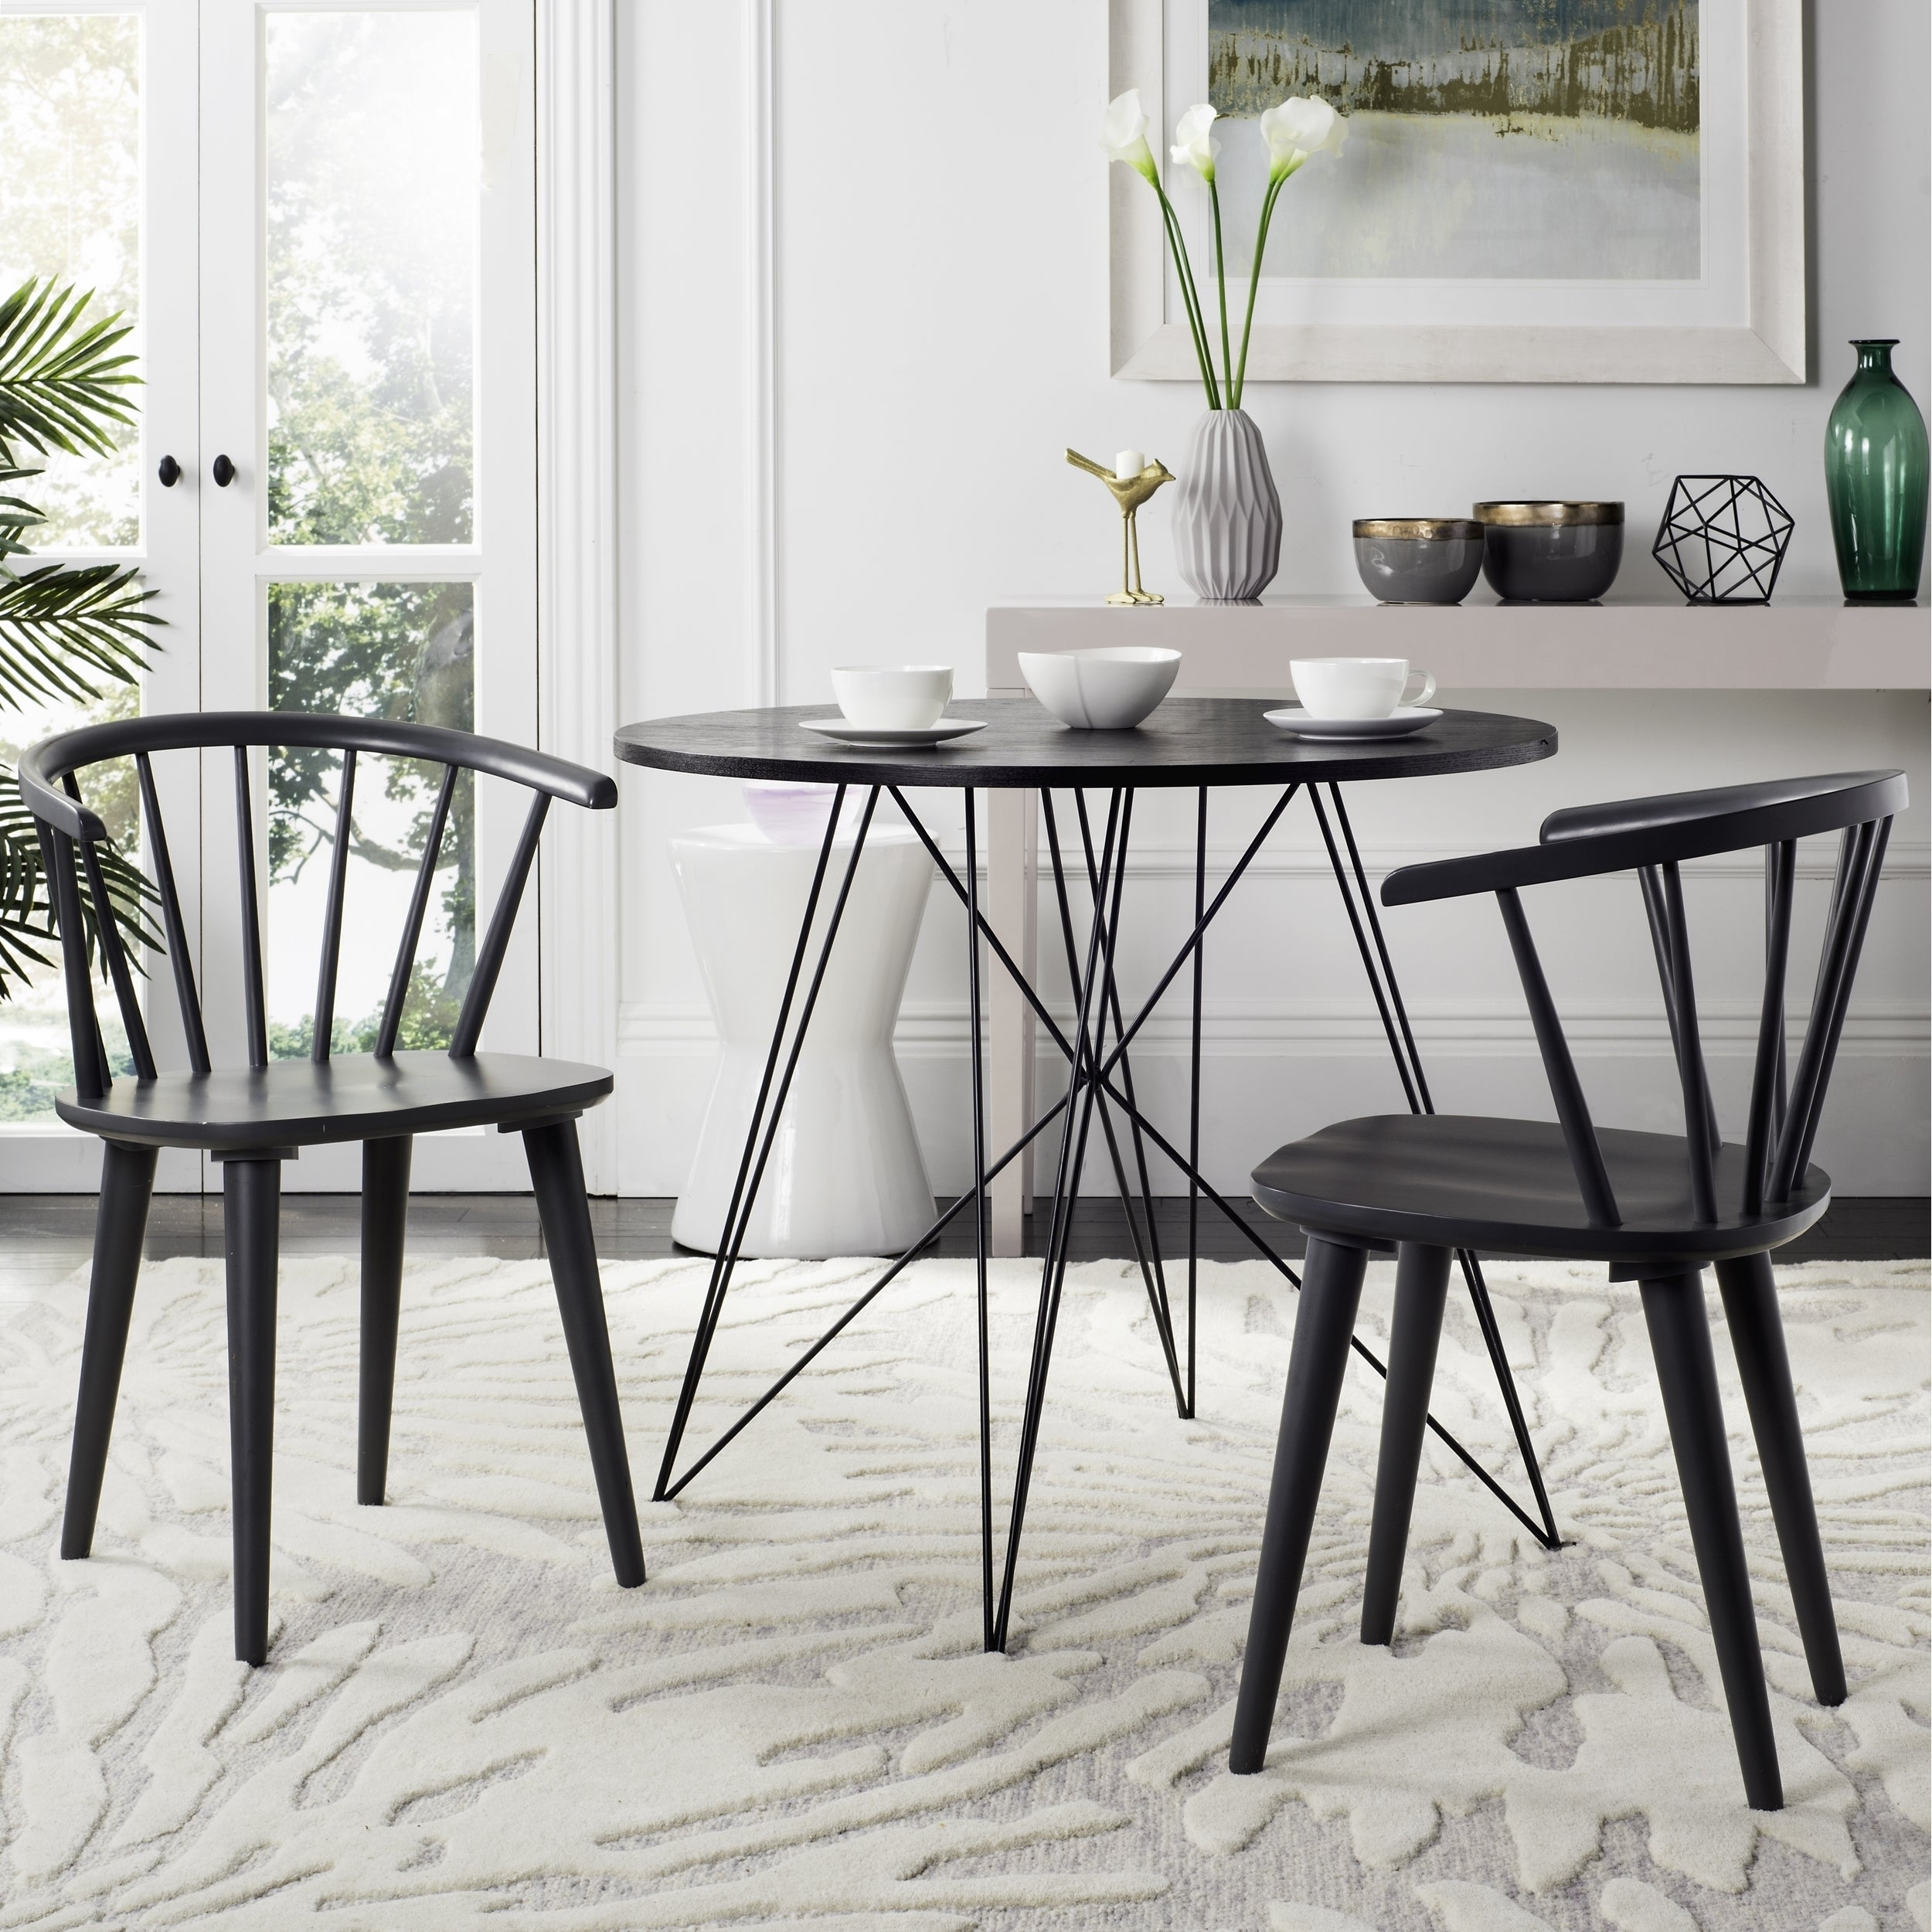 https://ak1.ostkcdn.com//images/products/10353804/Safavieh-Country-Classic-Dining-Blanchard-Grey-Wood-Side-Chairs-Set-of-2-93778c1f-6e4f-4bf0-8e54-5dc2a32dbca0.jpg